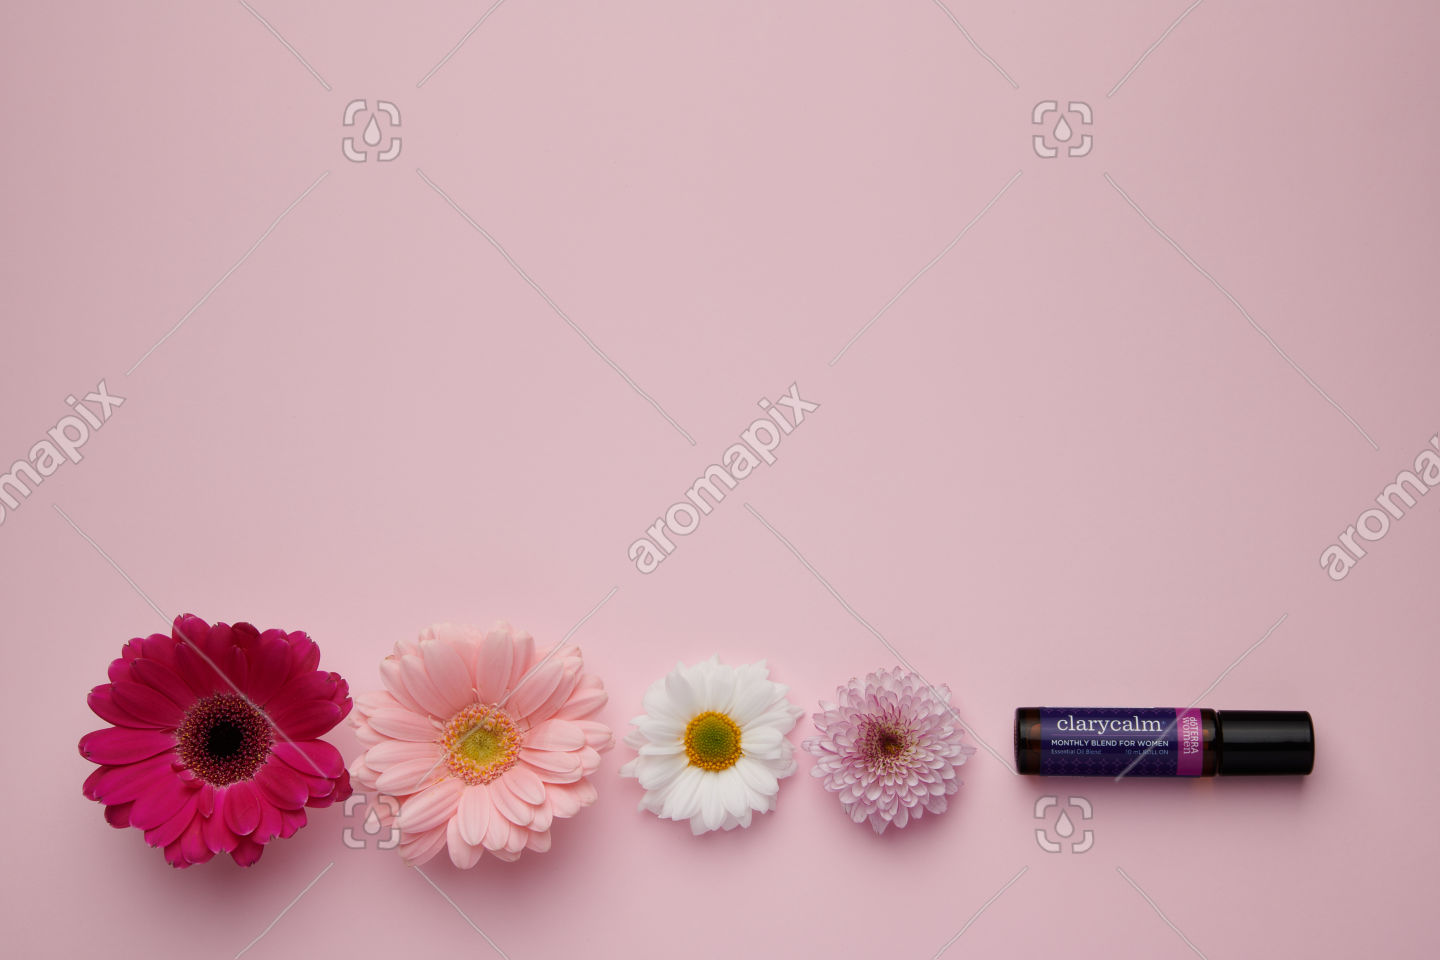 doTERRA ClaryCalm with flowers on pink